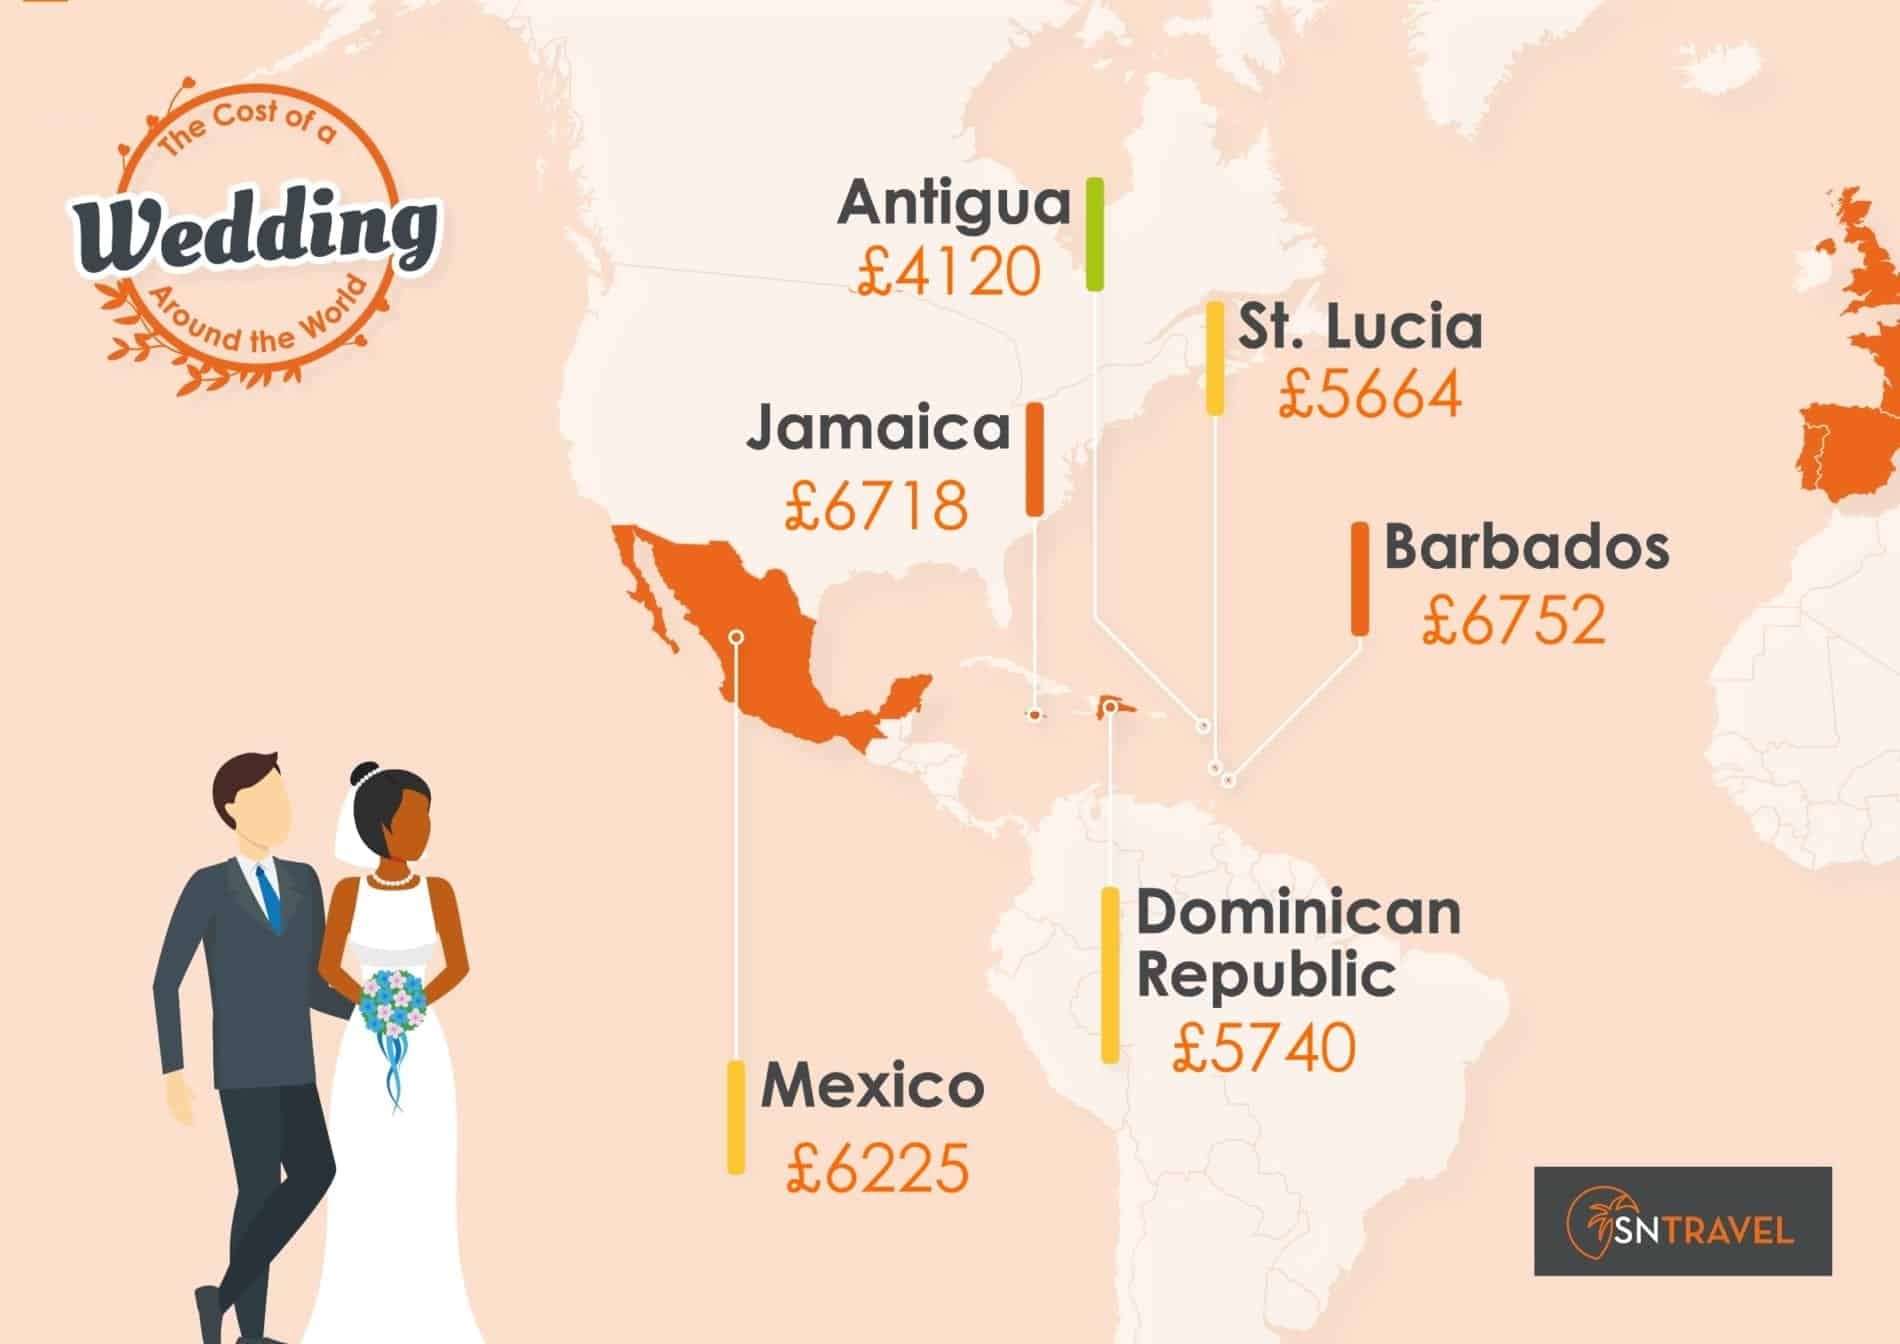 The Cost Of Getting Married Abroad 22 Countries Analysed